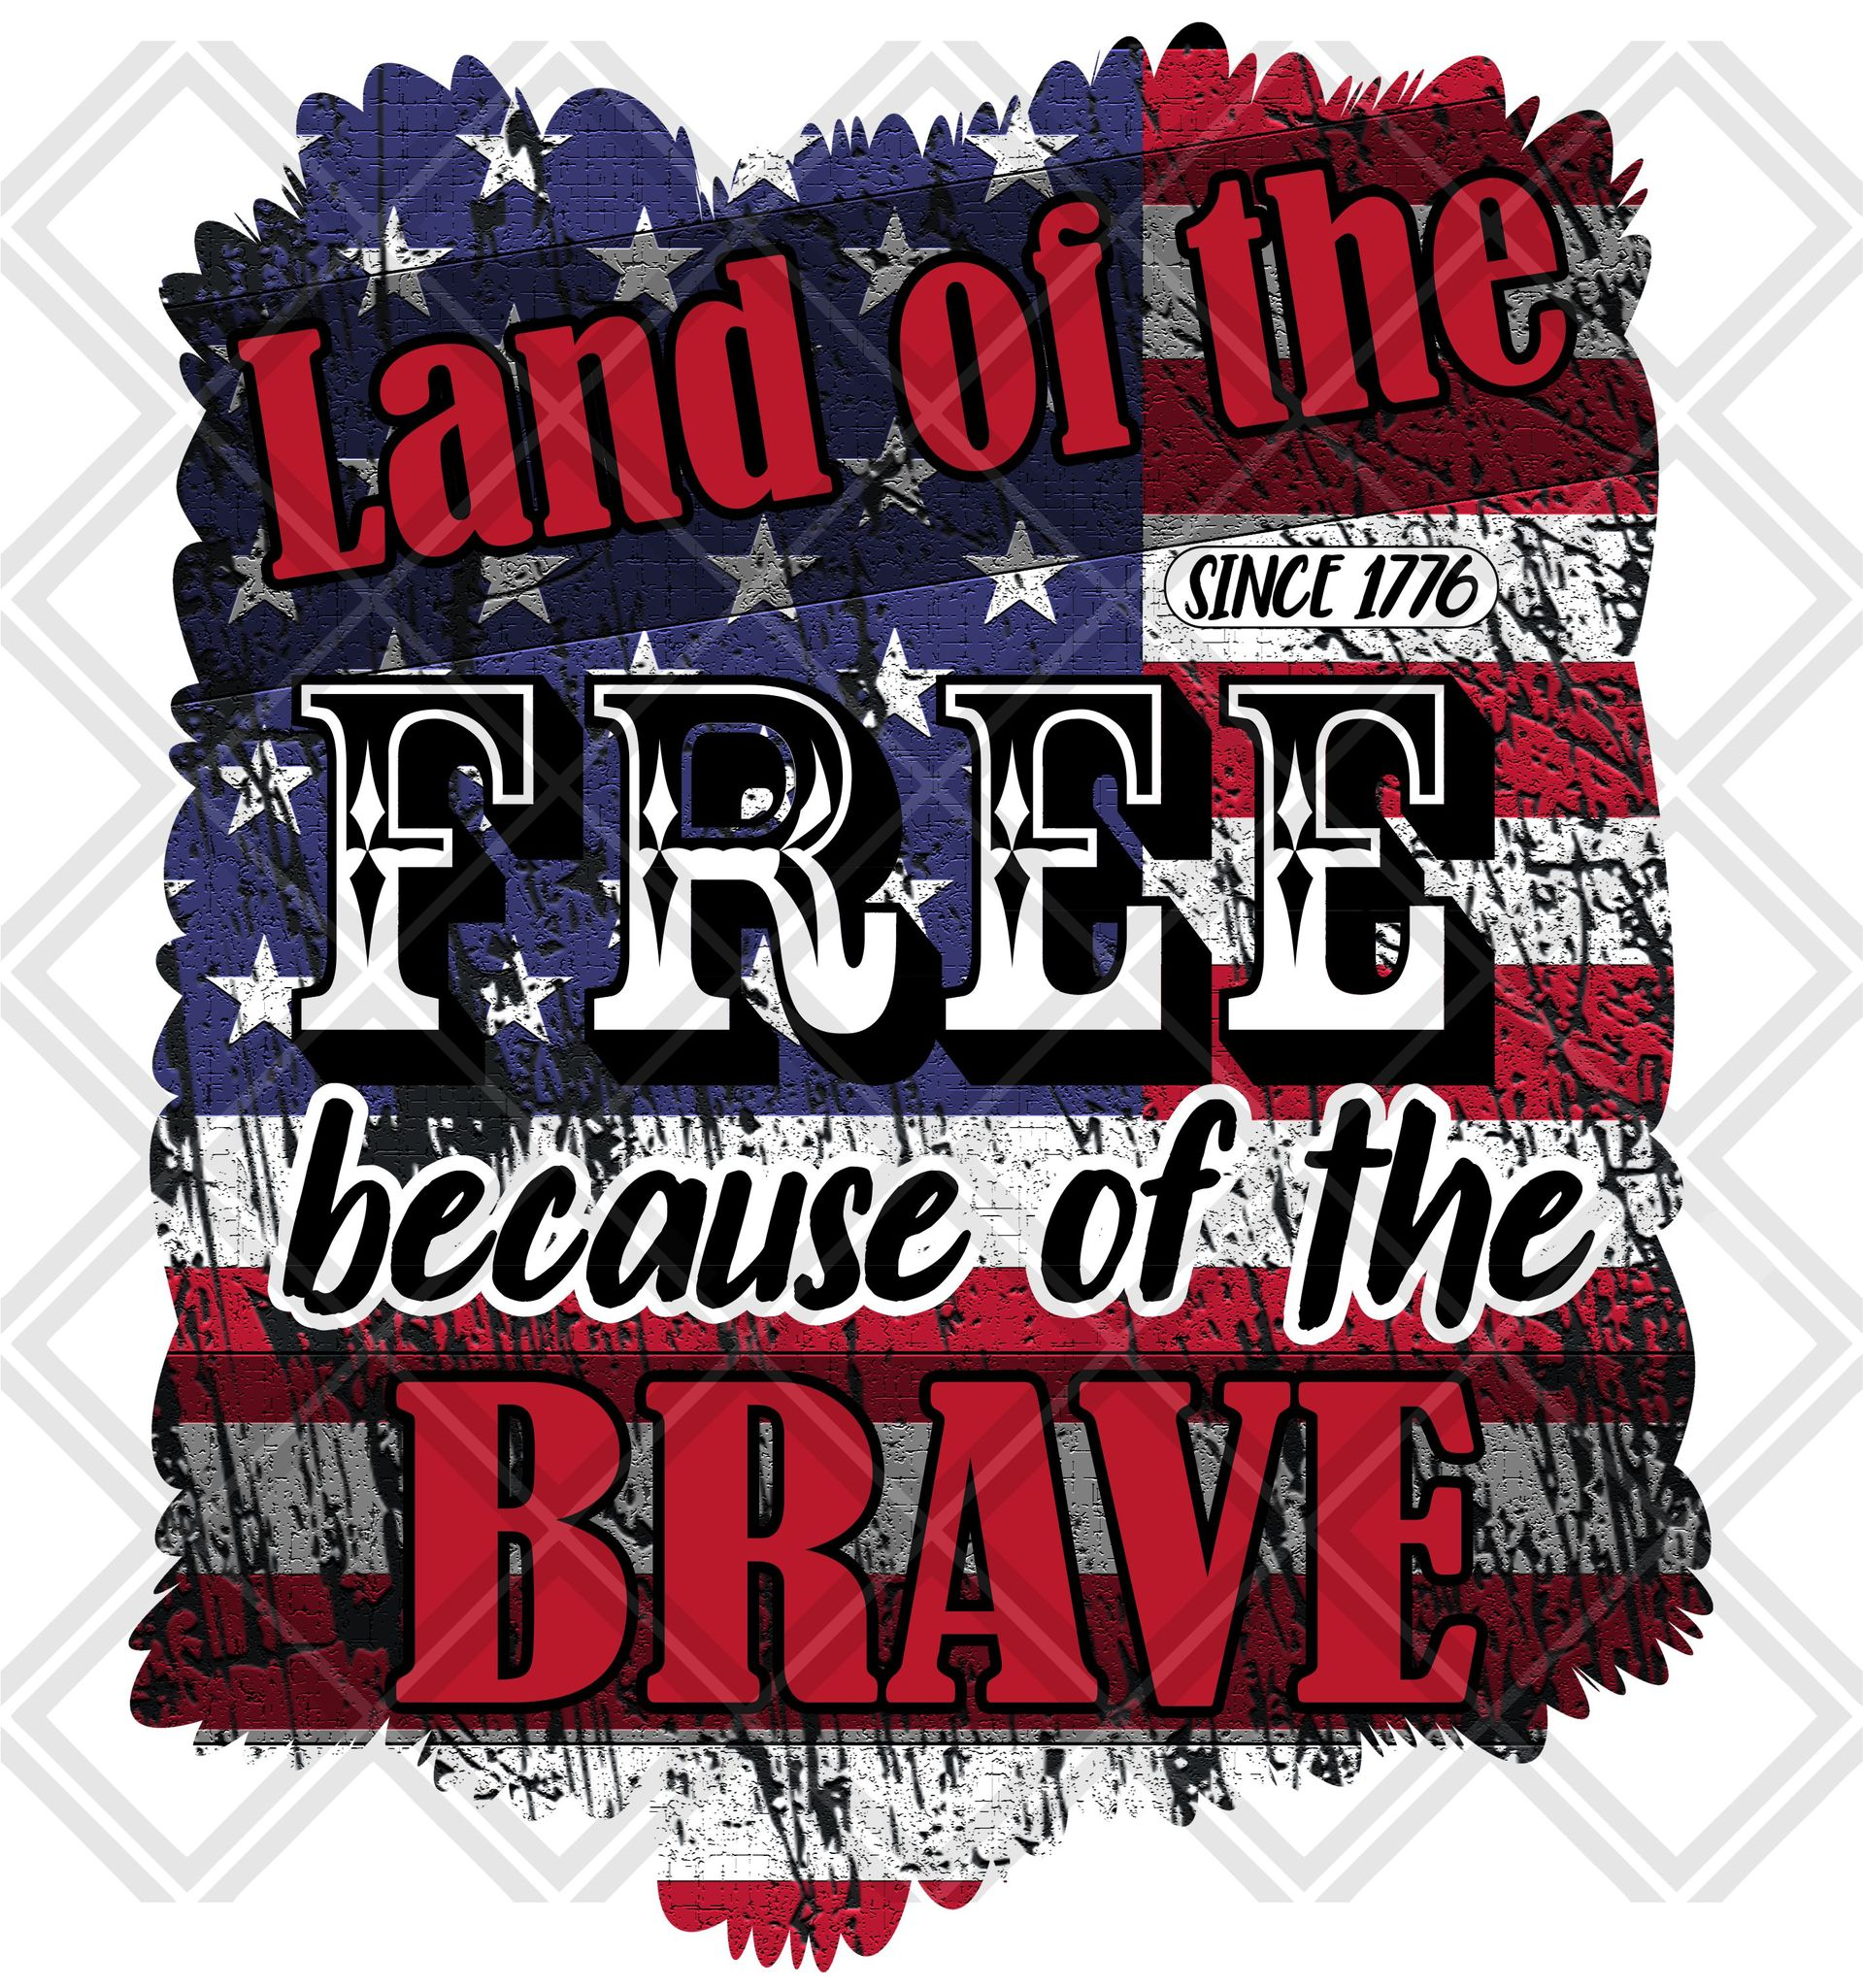 Land of the Free because of the brave Frame HTV TRANSFER, Sublimation  Transfer, Stickers, & All Glitter HTV TRANSFER.